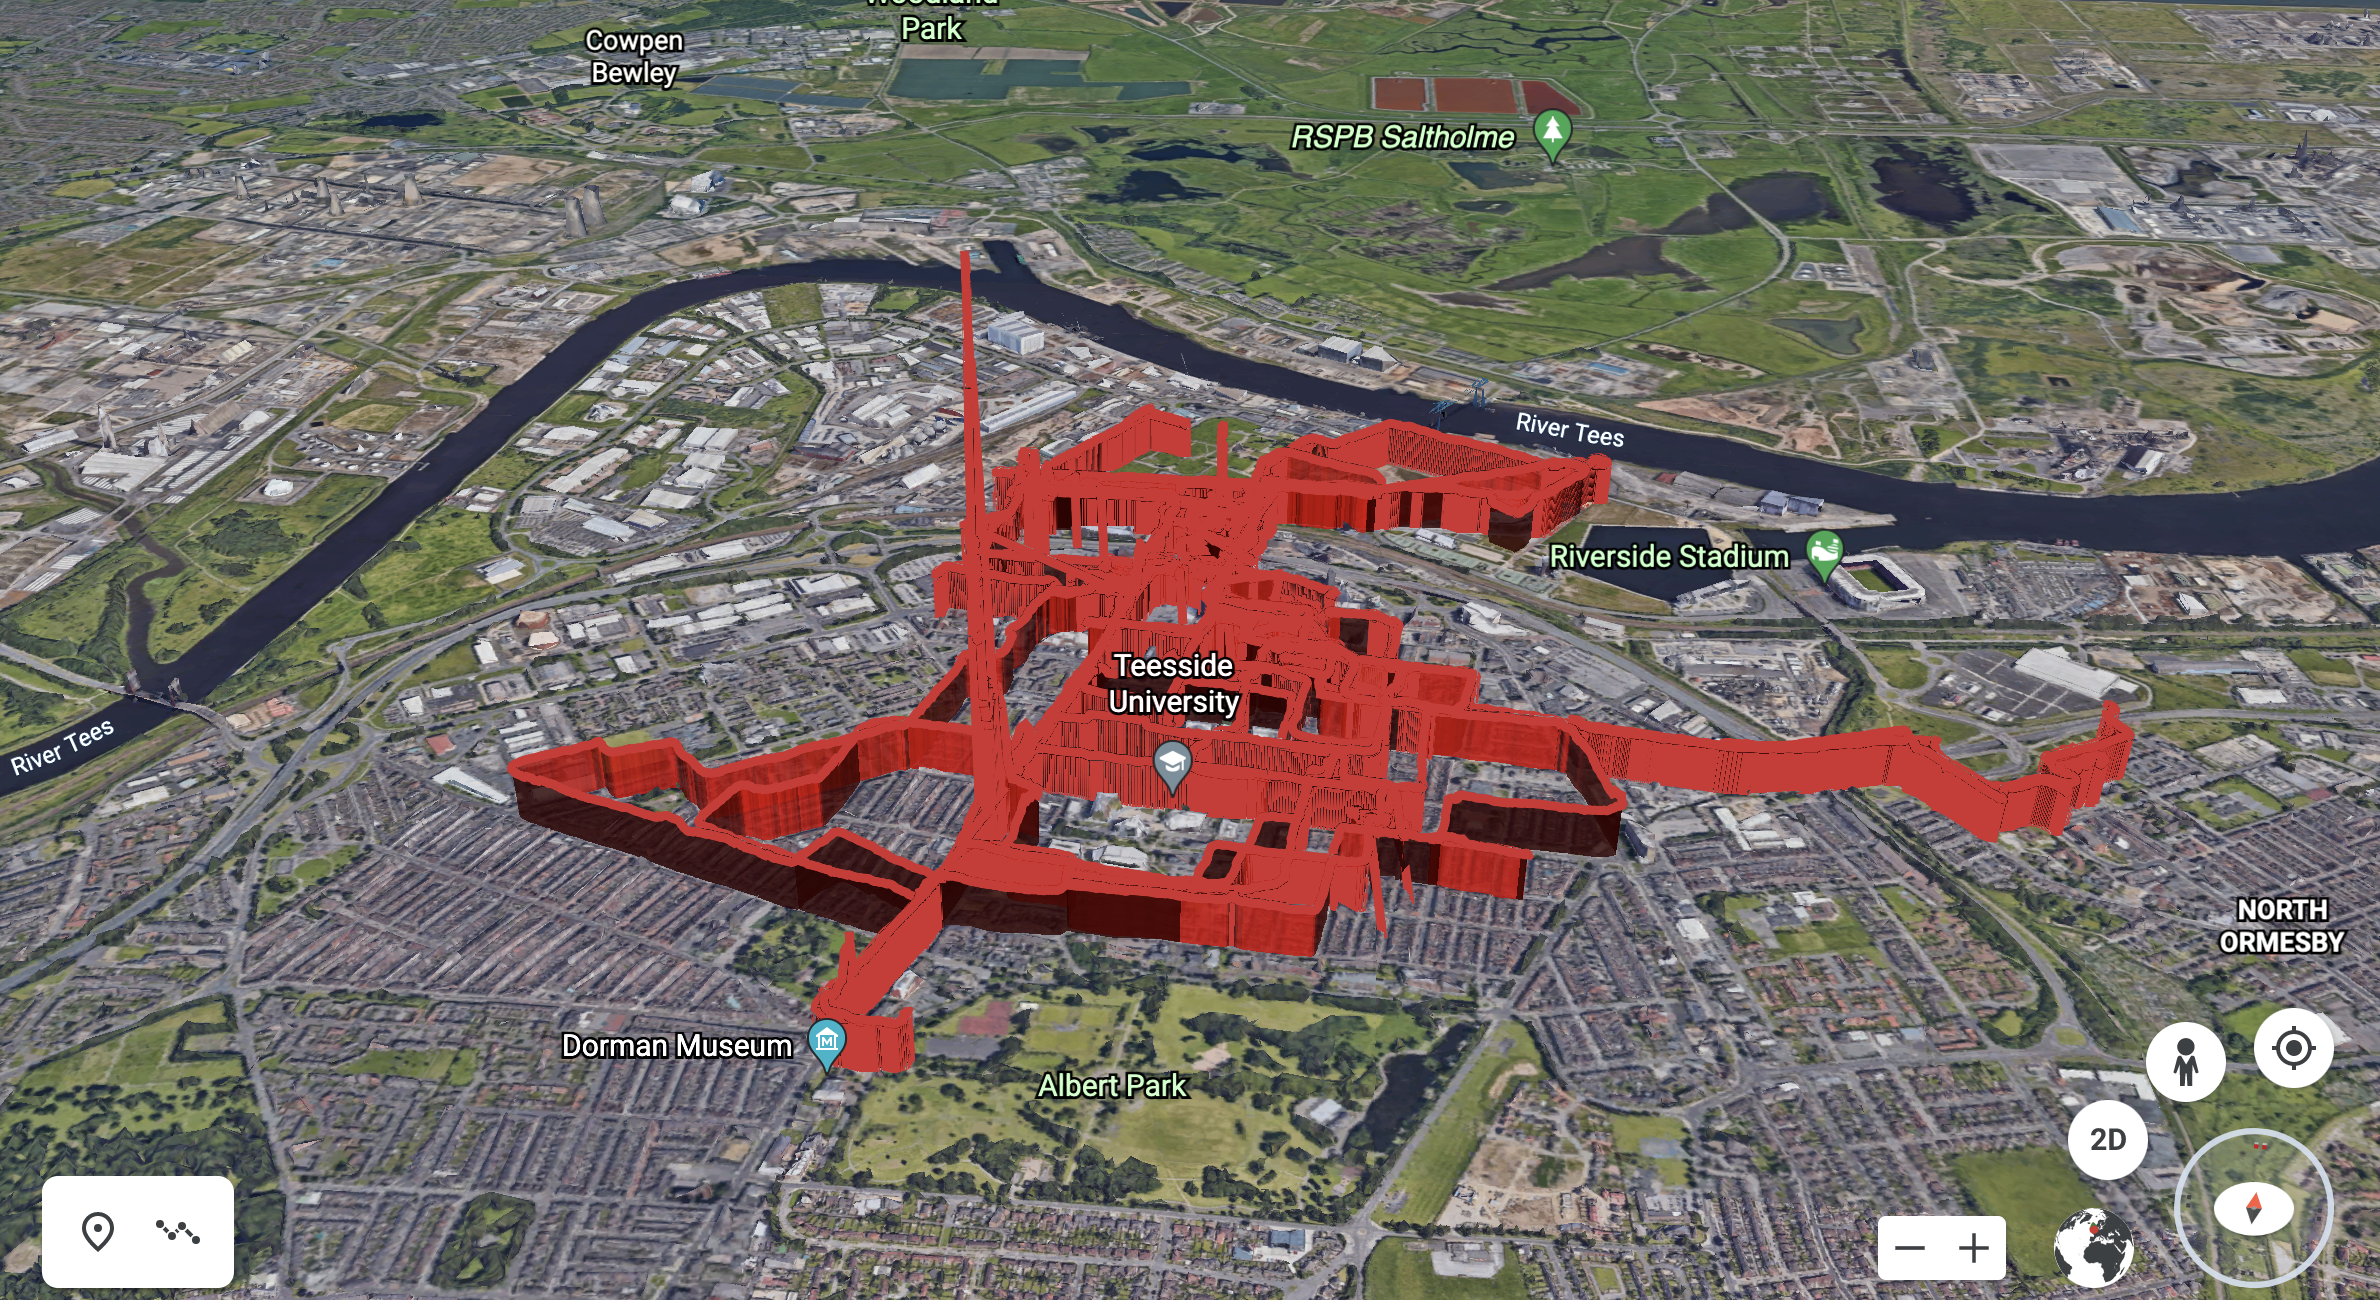 map of Middlesbrough with a red line plotting the cycle path and air pollution levels